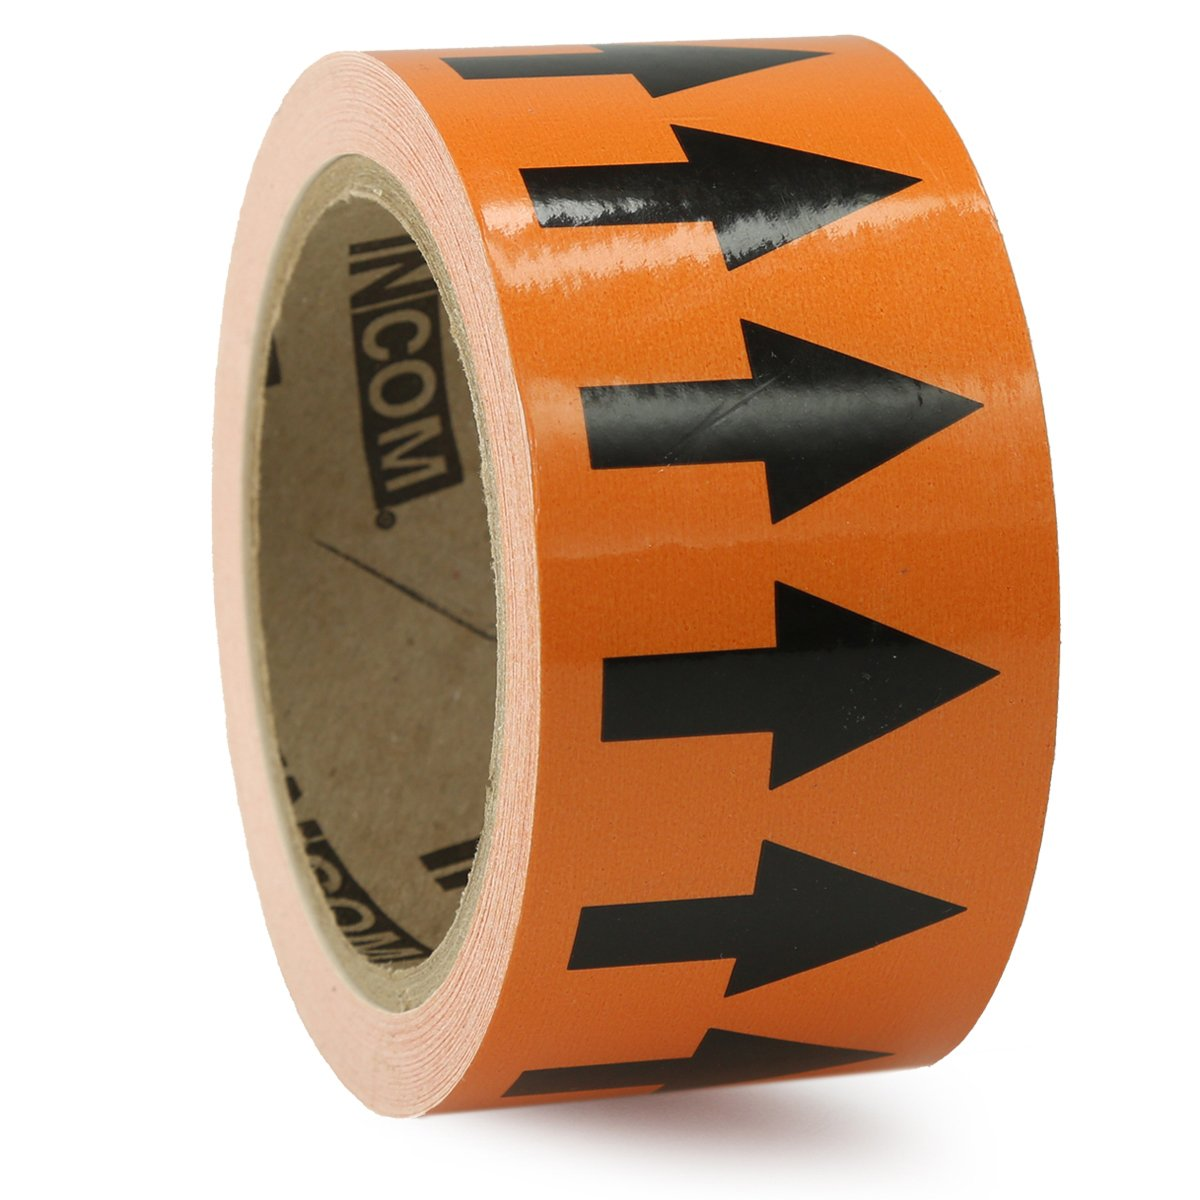 Accuform Signs RAW254BKOR Vinyl Directional Flow Arrow Tape, Black Arrow on Orange, 2'' W x 54' L, Black on Orange by Accuform (Image #1)